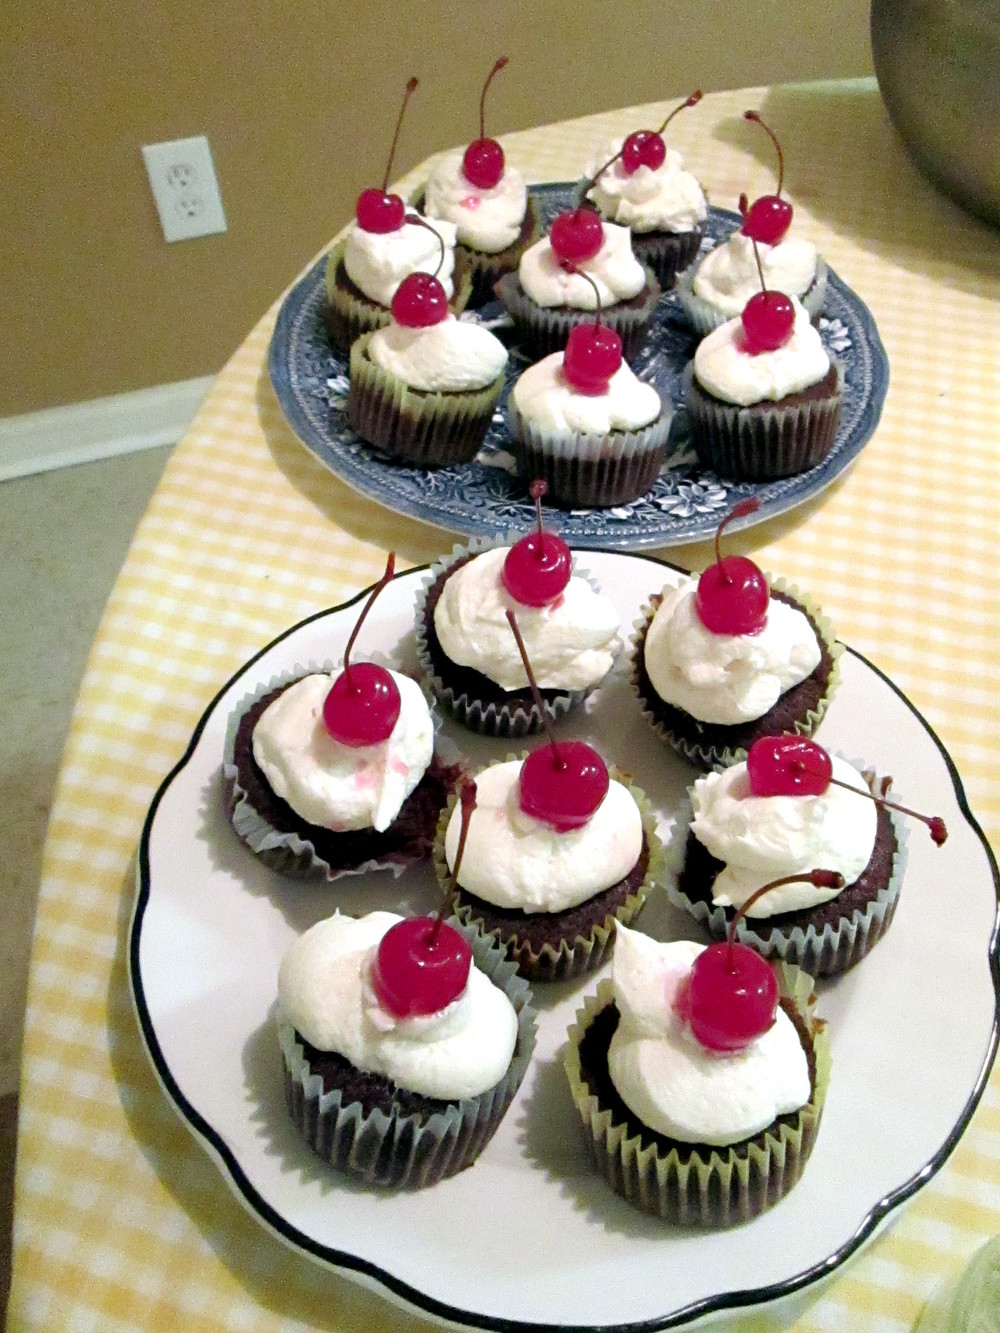 paperswalloweventscupcakes